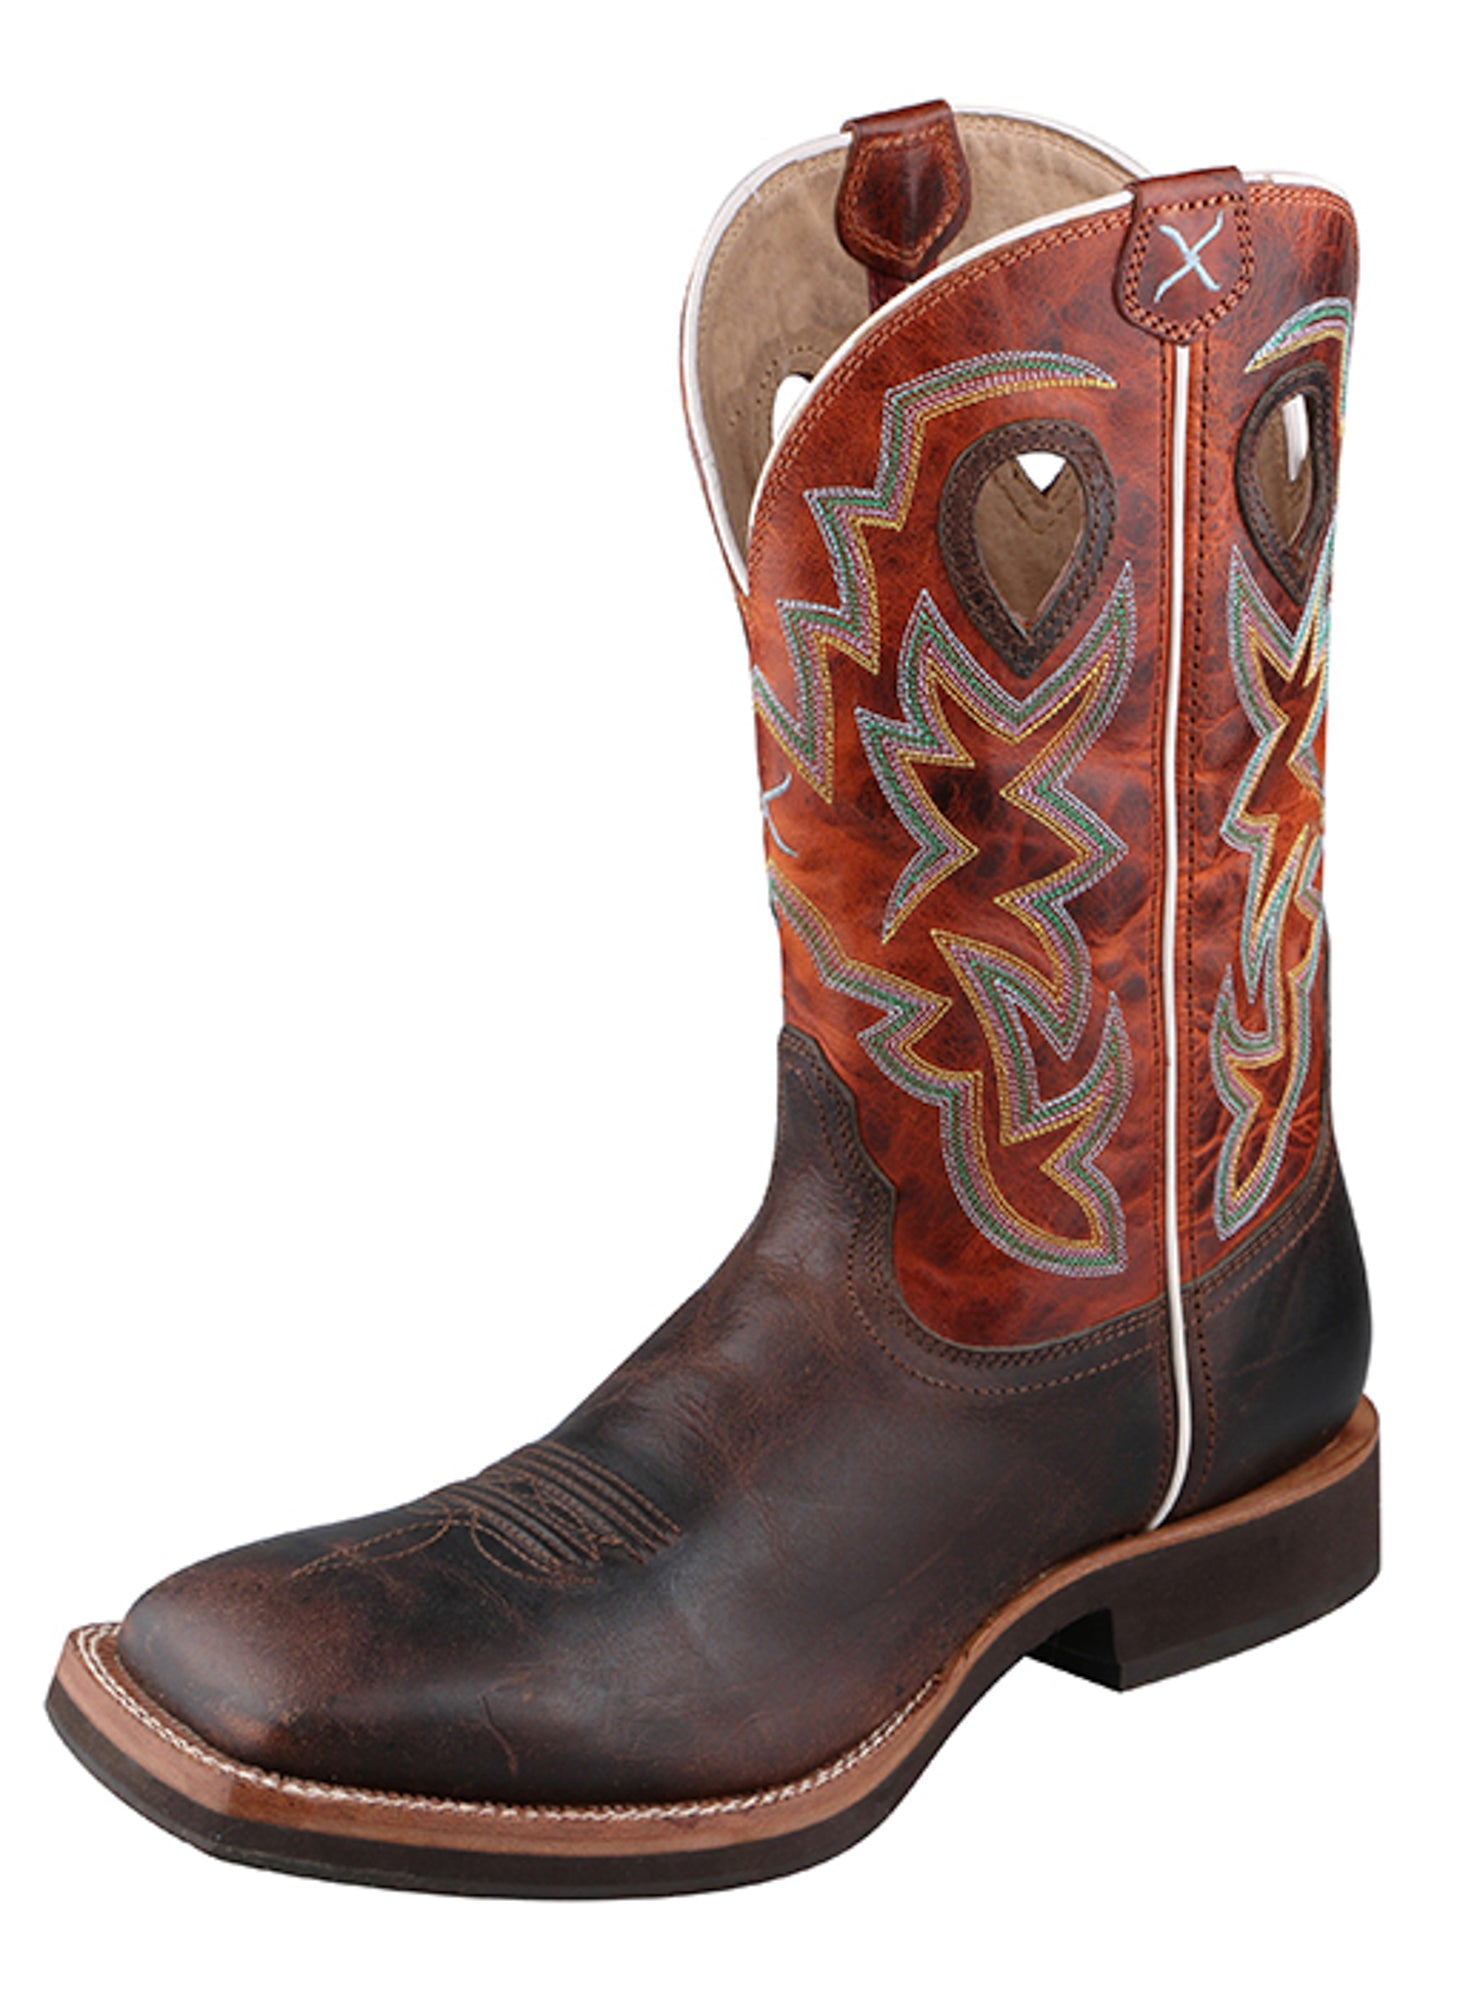 f2494111dad Twisted X Mens Chocolate Leather Square Toe Orange Horseman Cowboy Boots